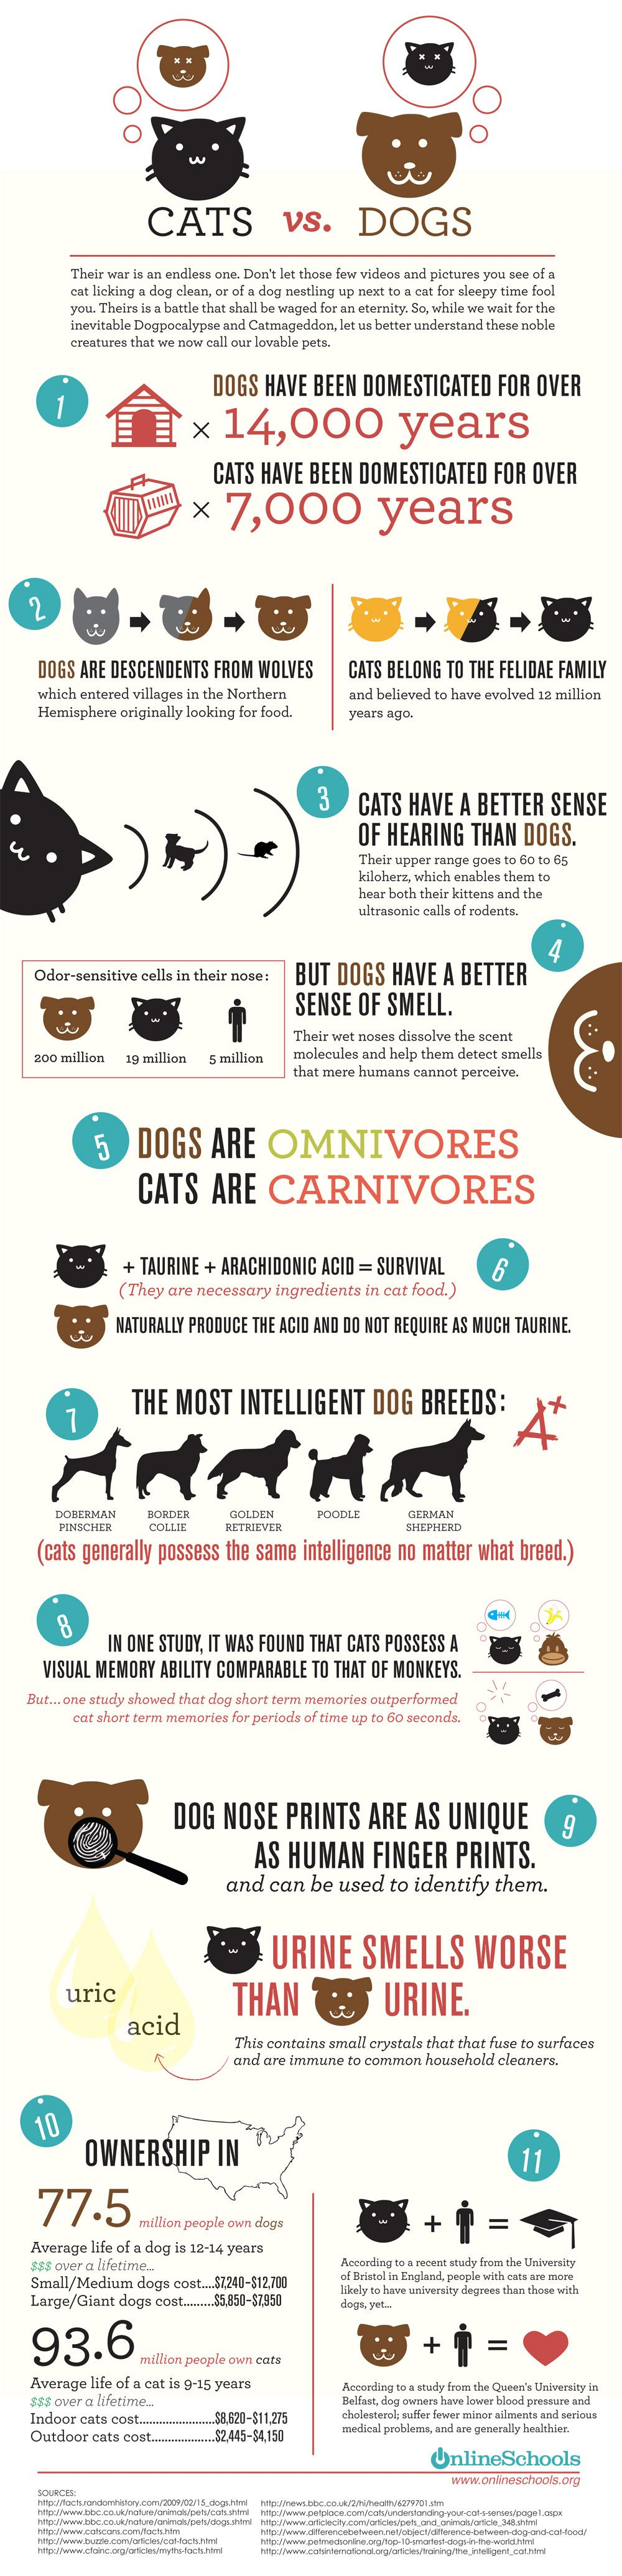 Cats vs. Dogs - love both!